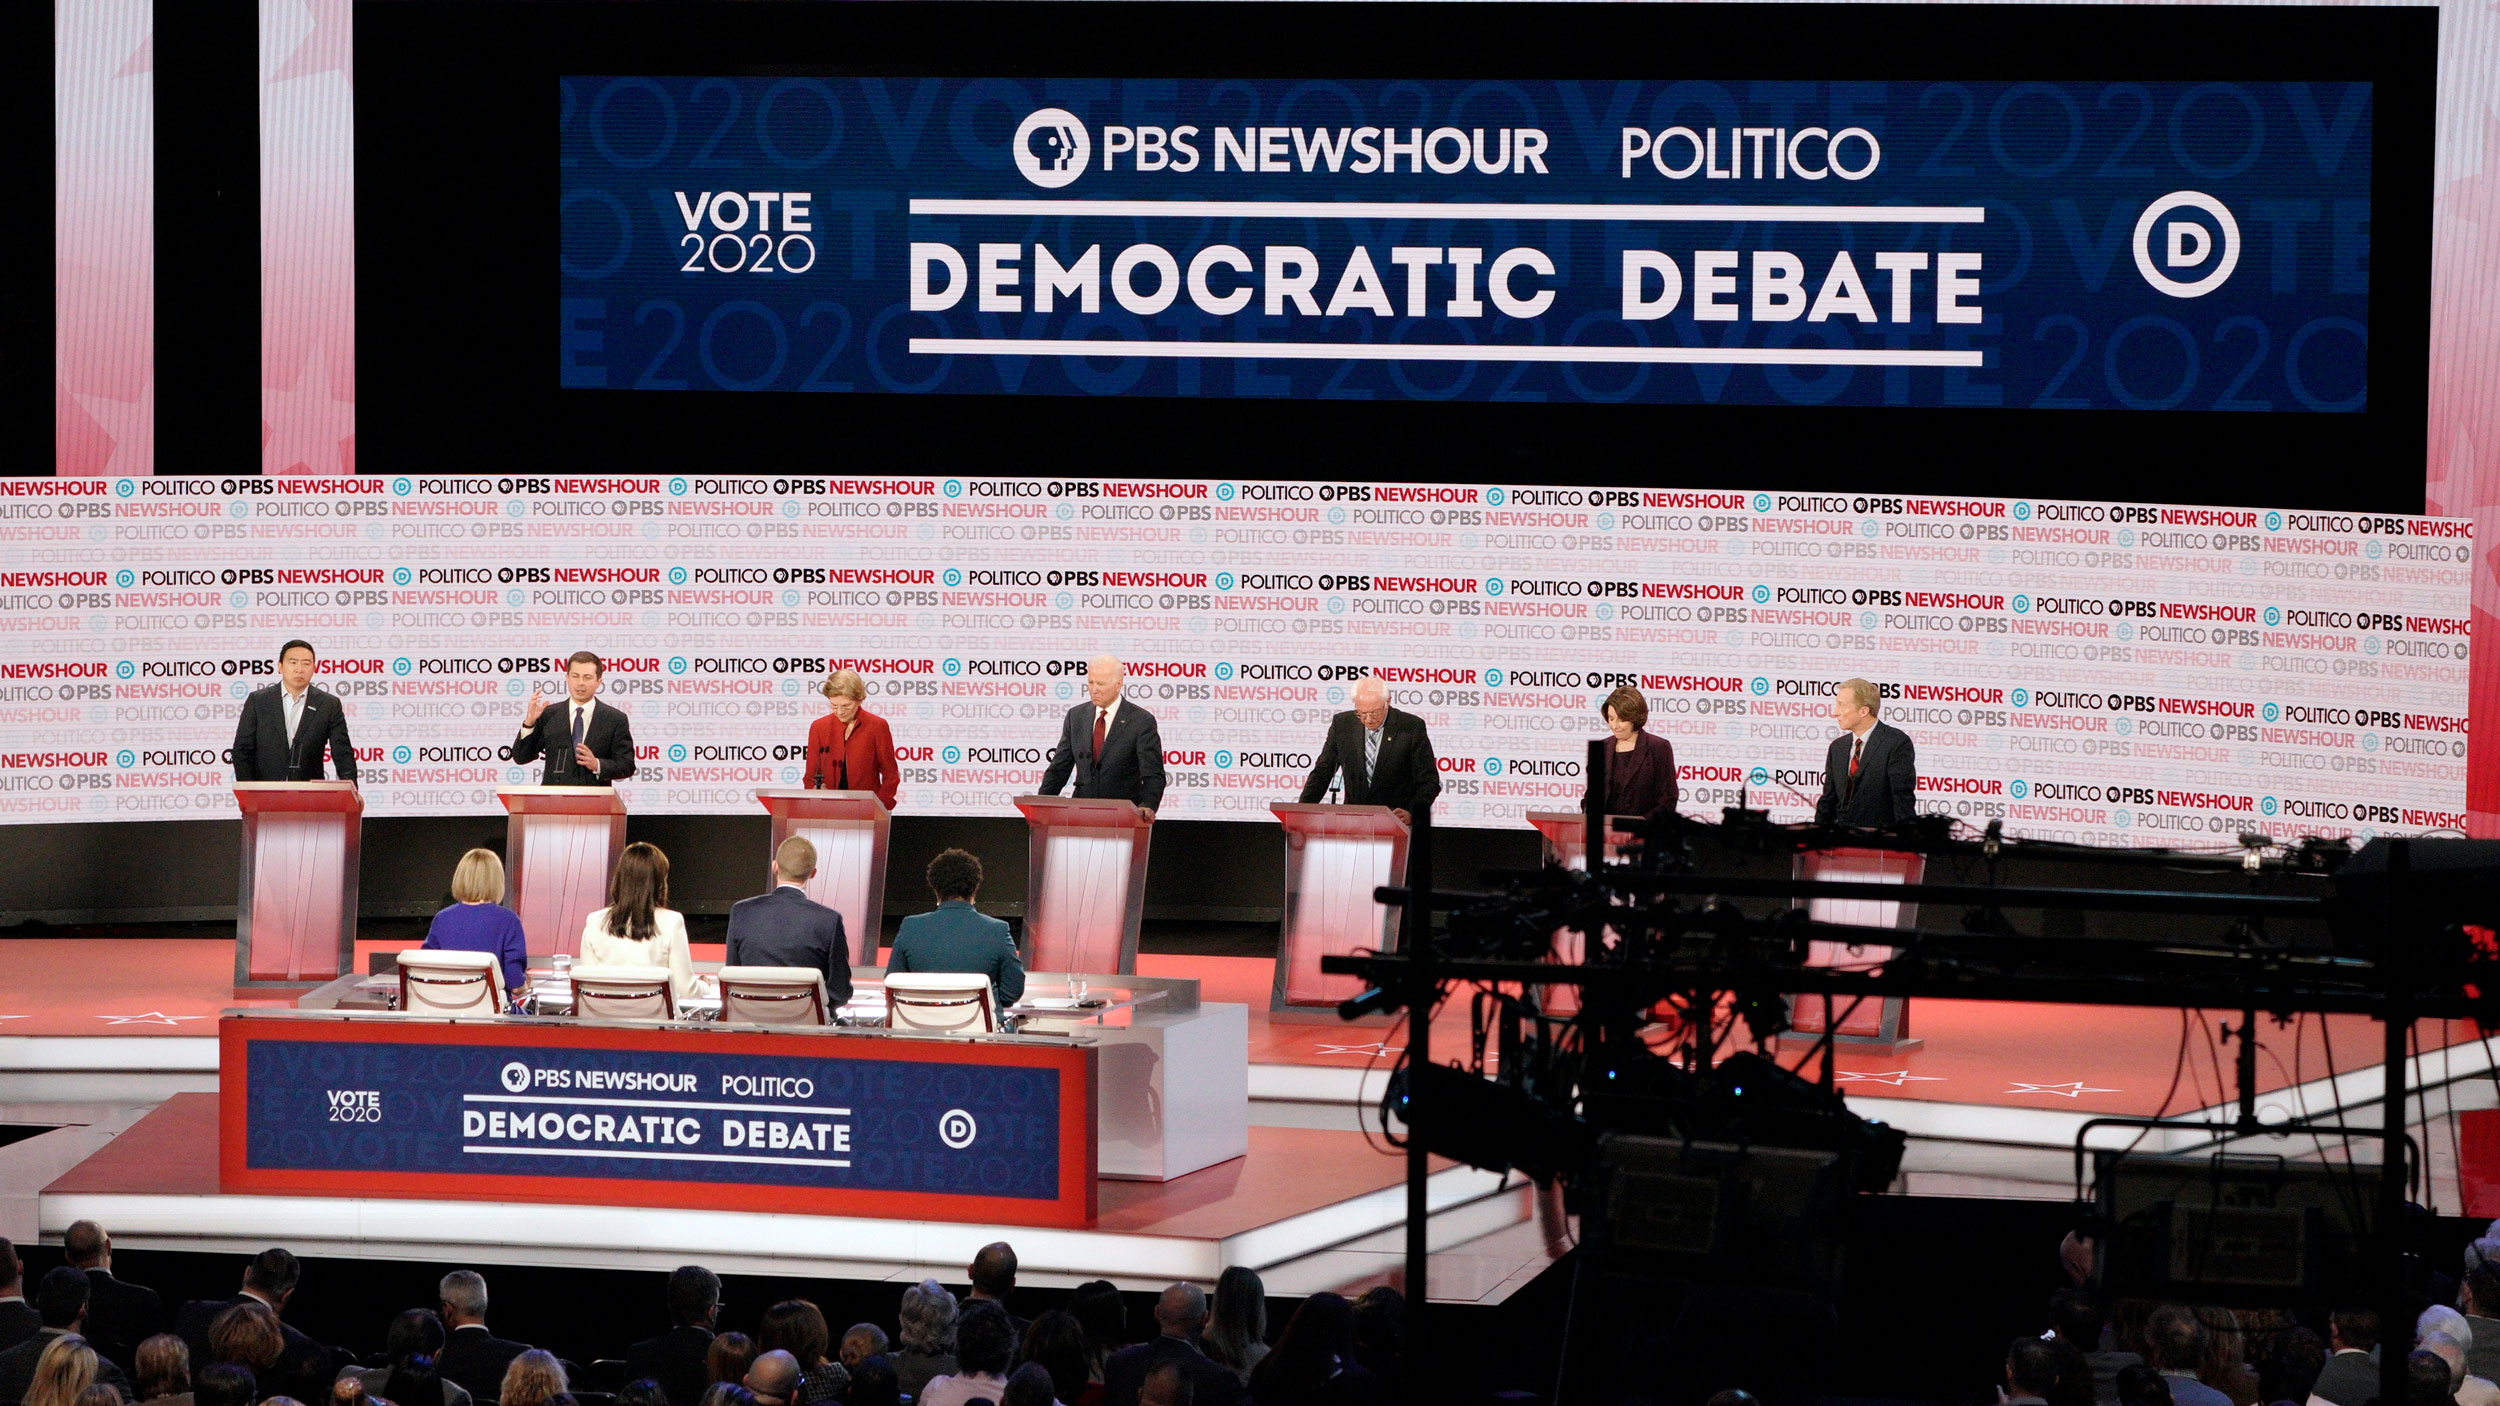 Democrats on stage behind podiums for a debate